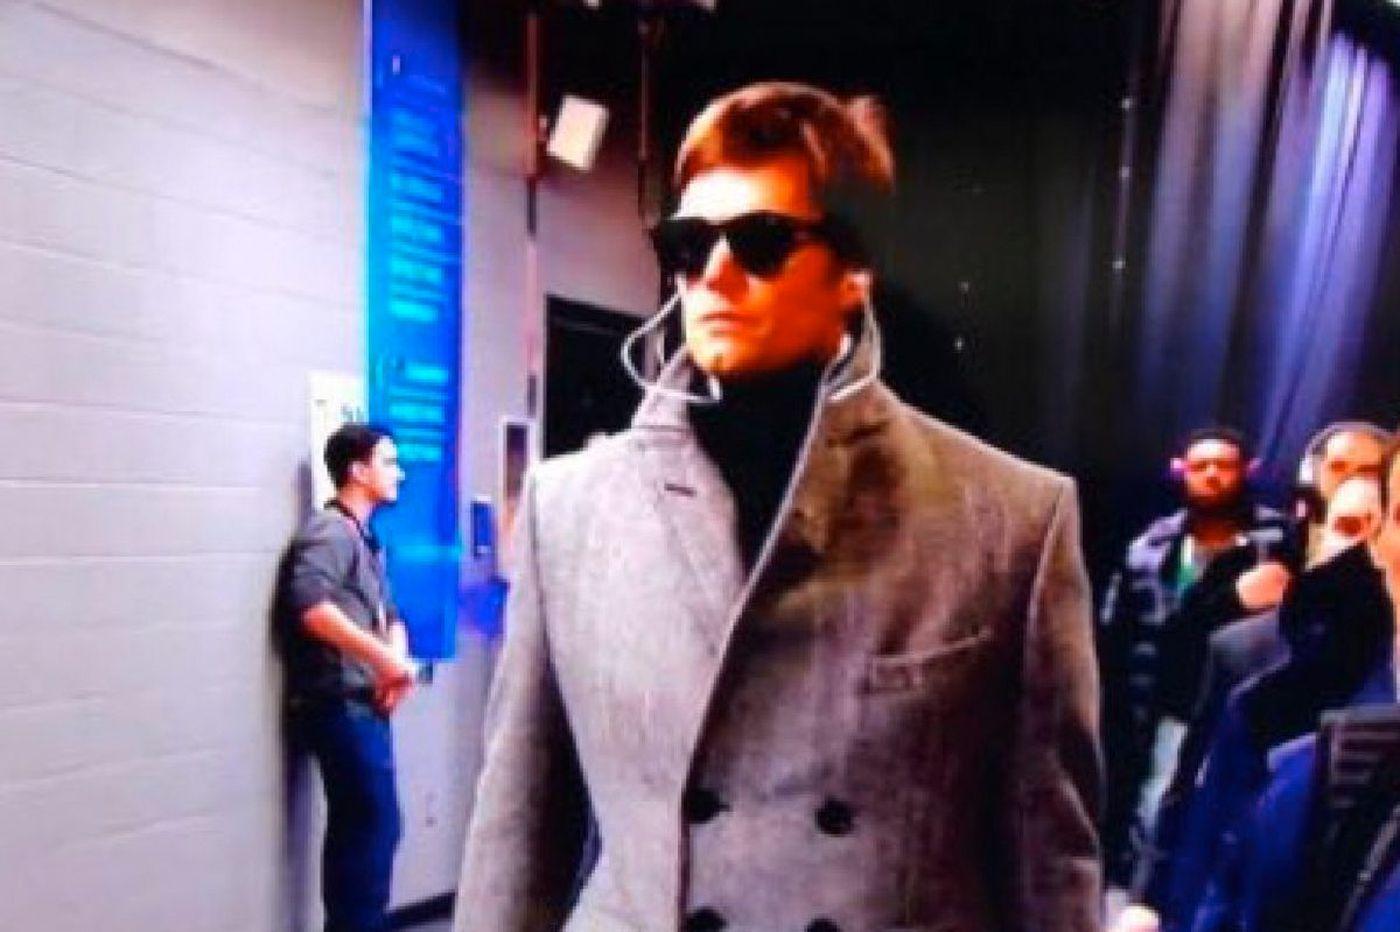 Tom Brady mocked over his 2018 Super Bowl outfit